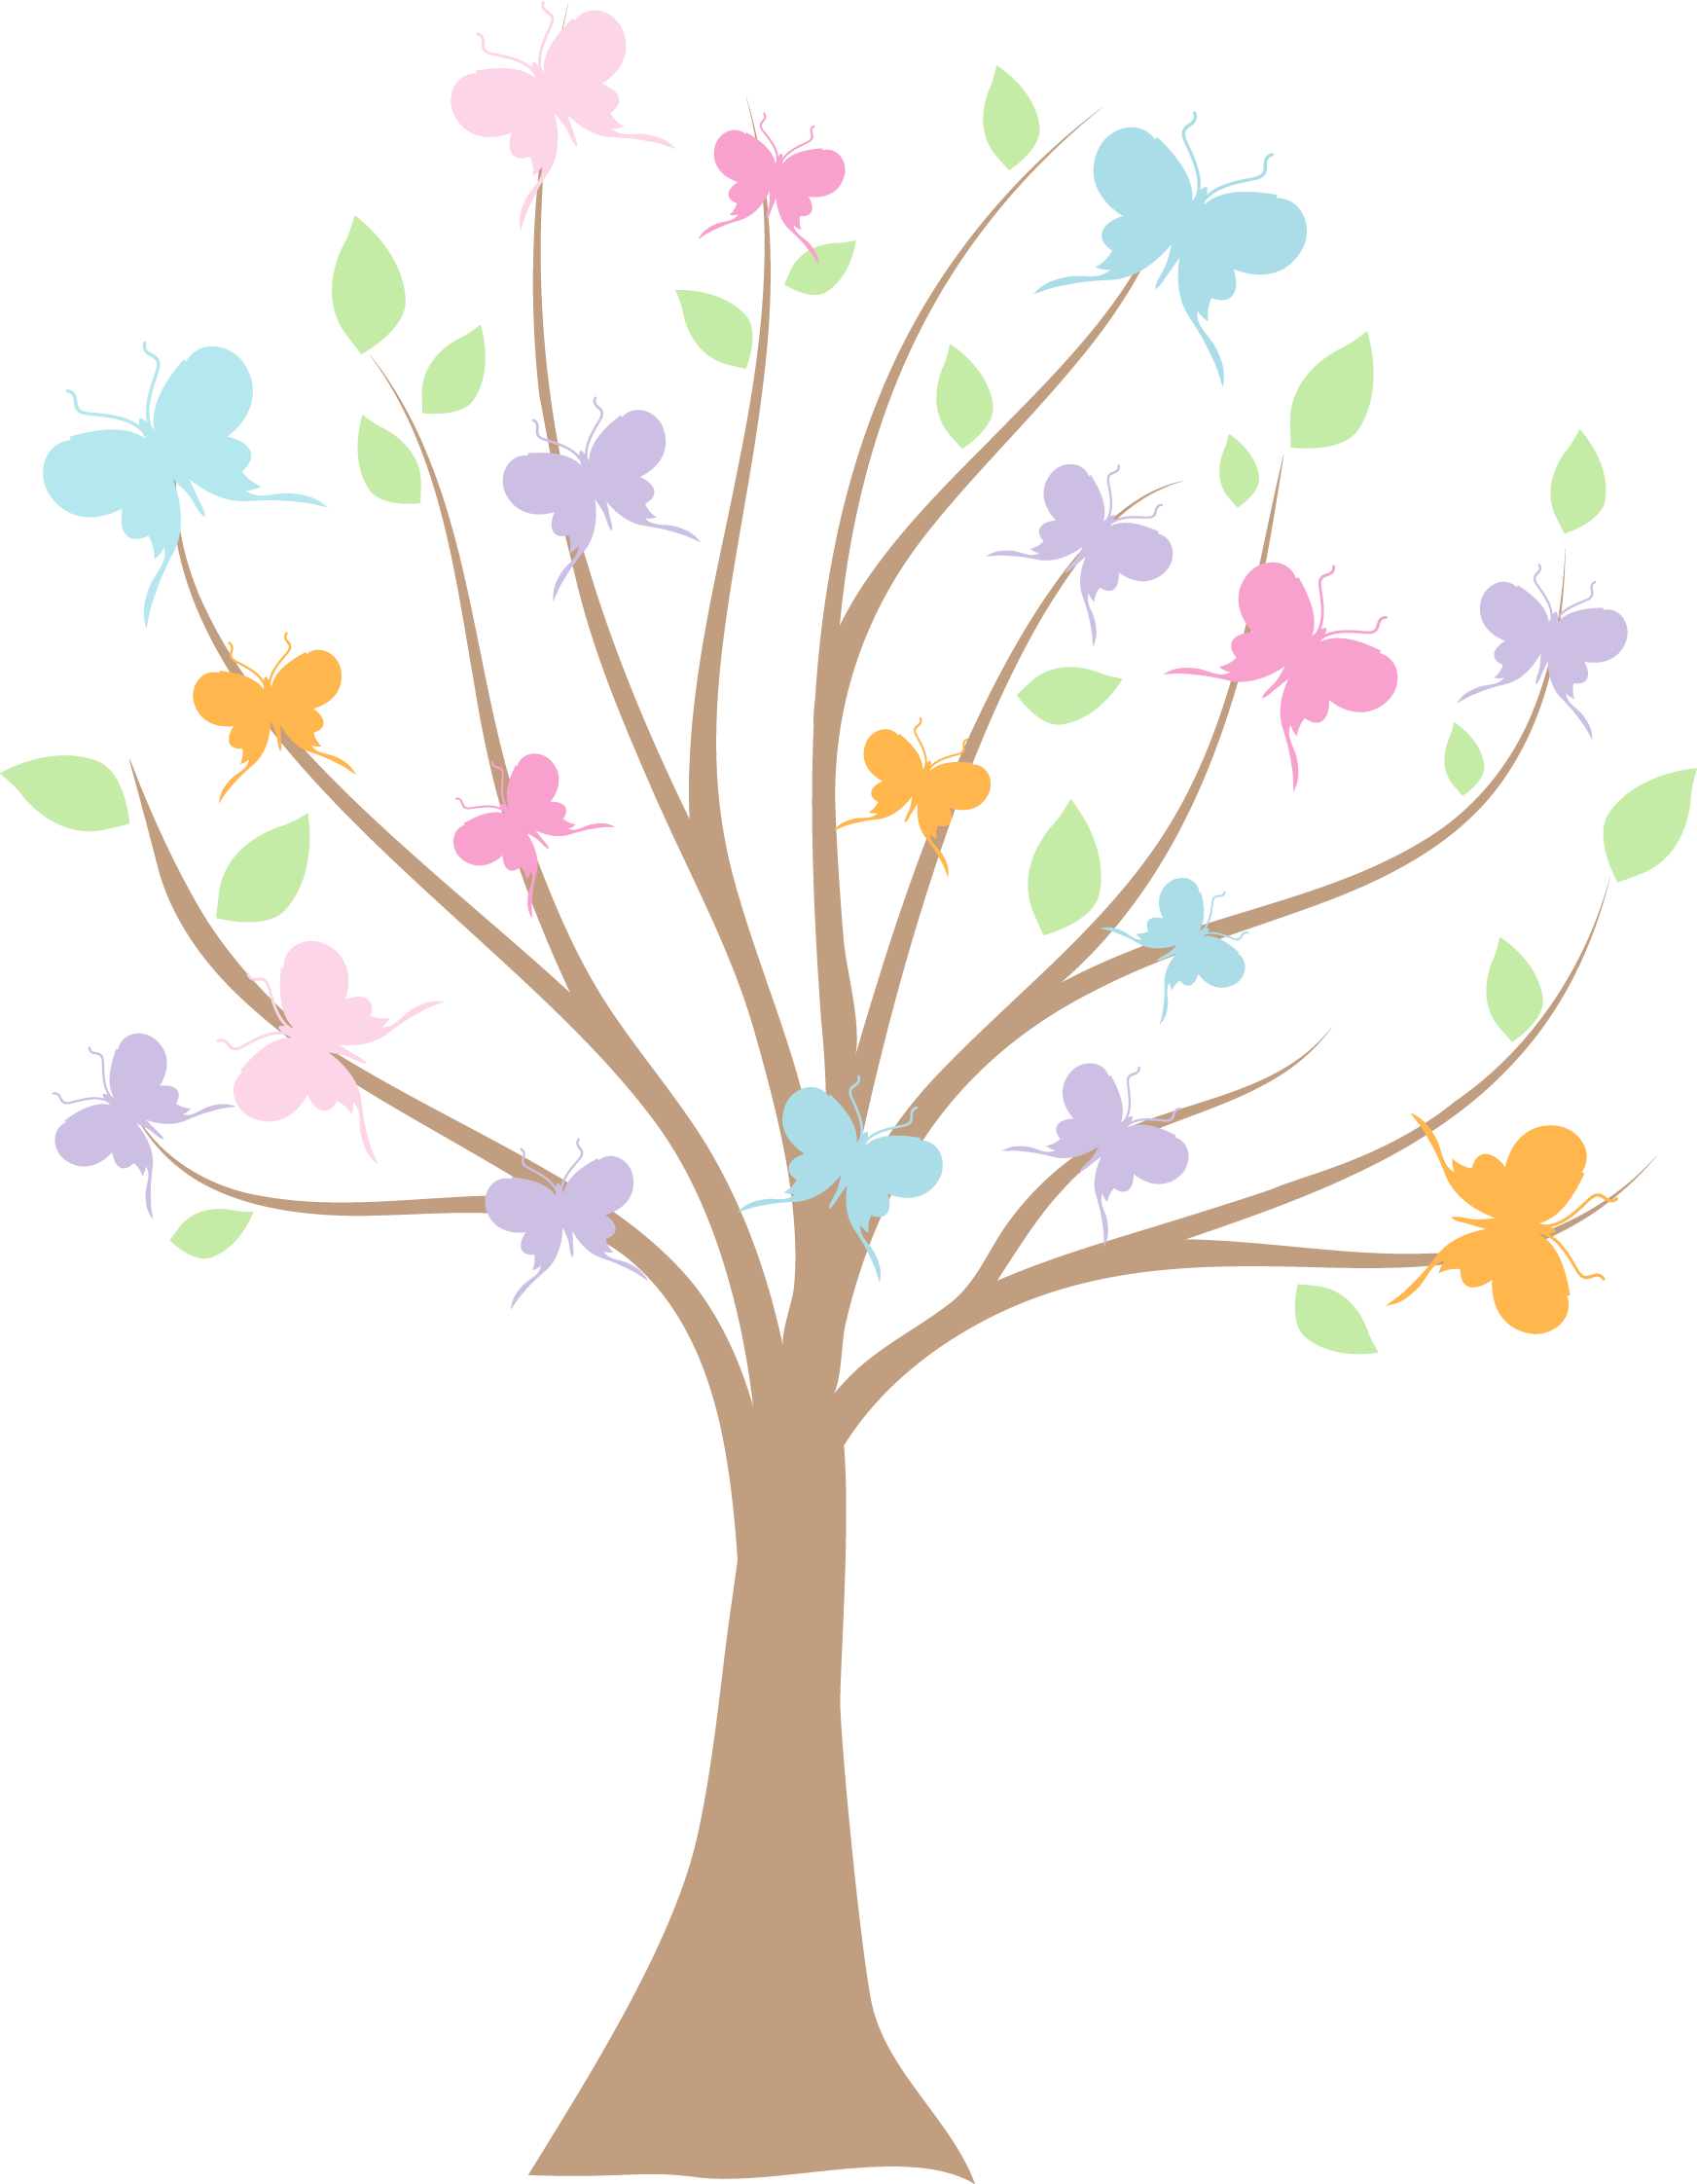 Butterfly tree clipart graphic stock Photo by @daniellemoraesfalcao - Minus   Digital Graphics ... graphic stock